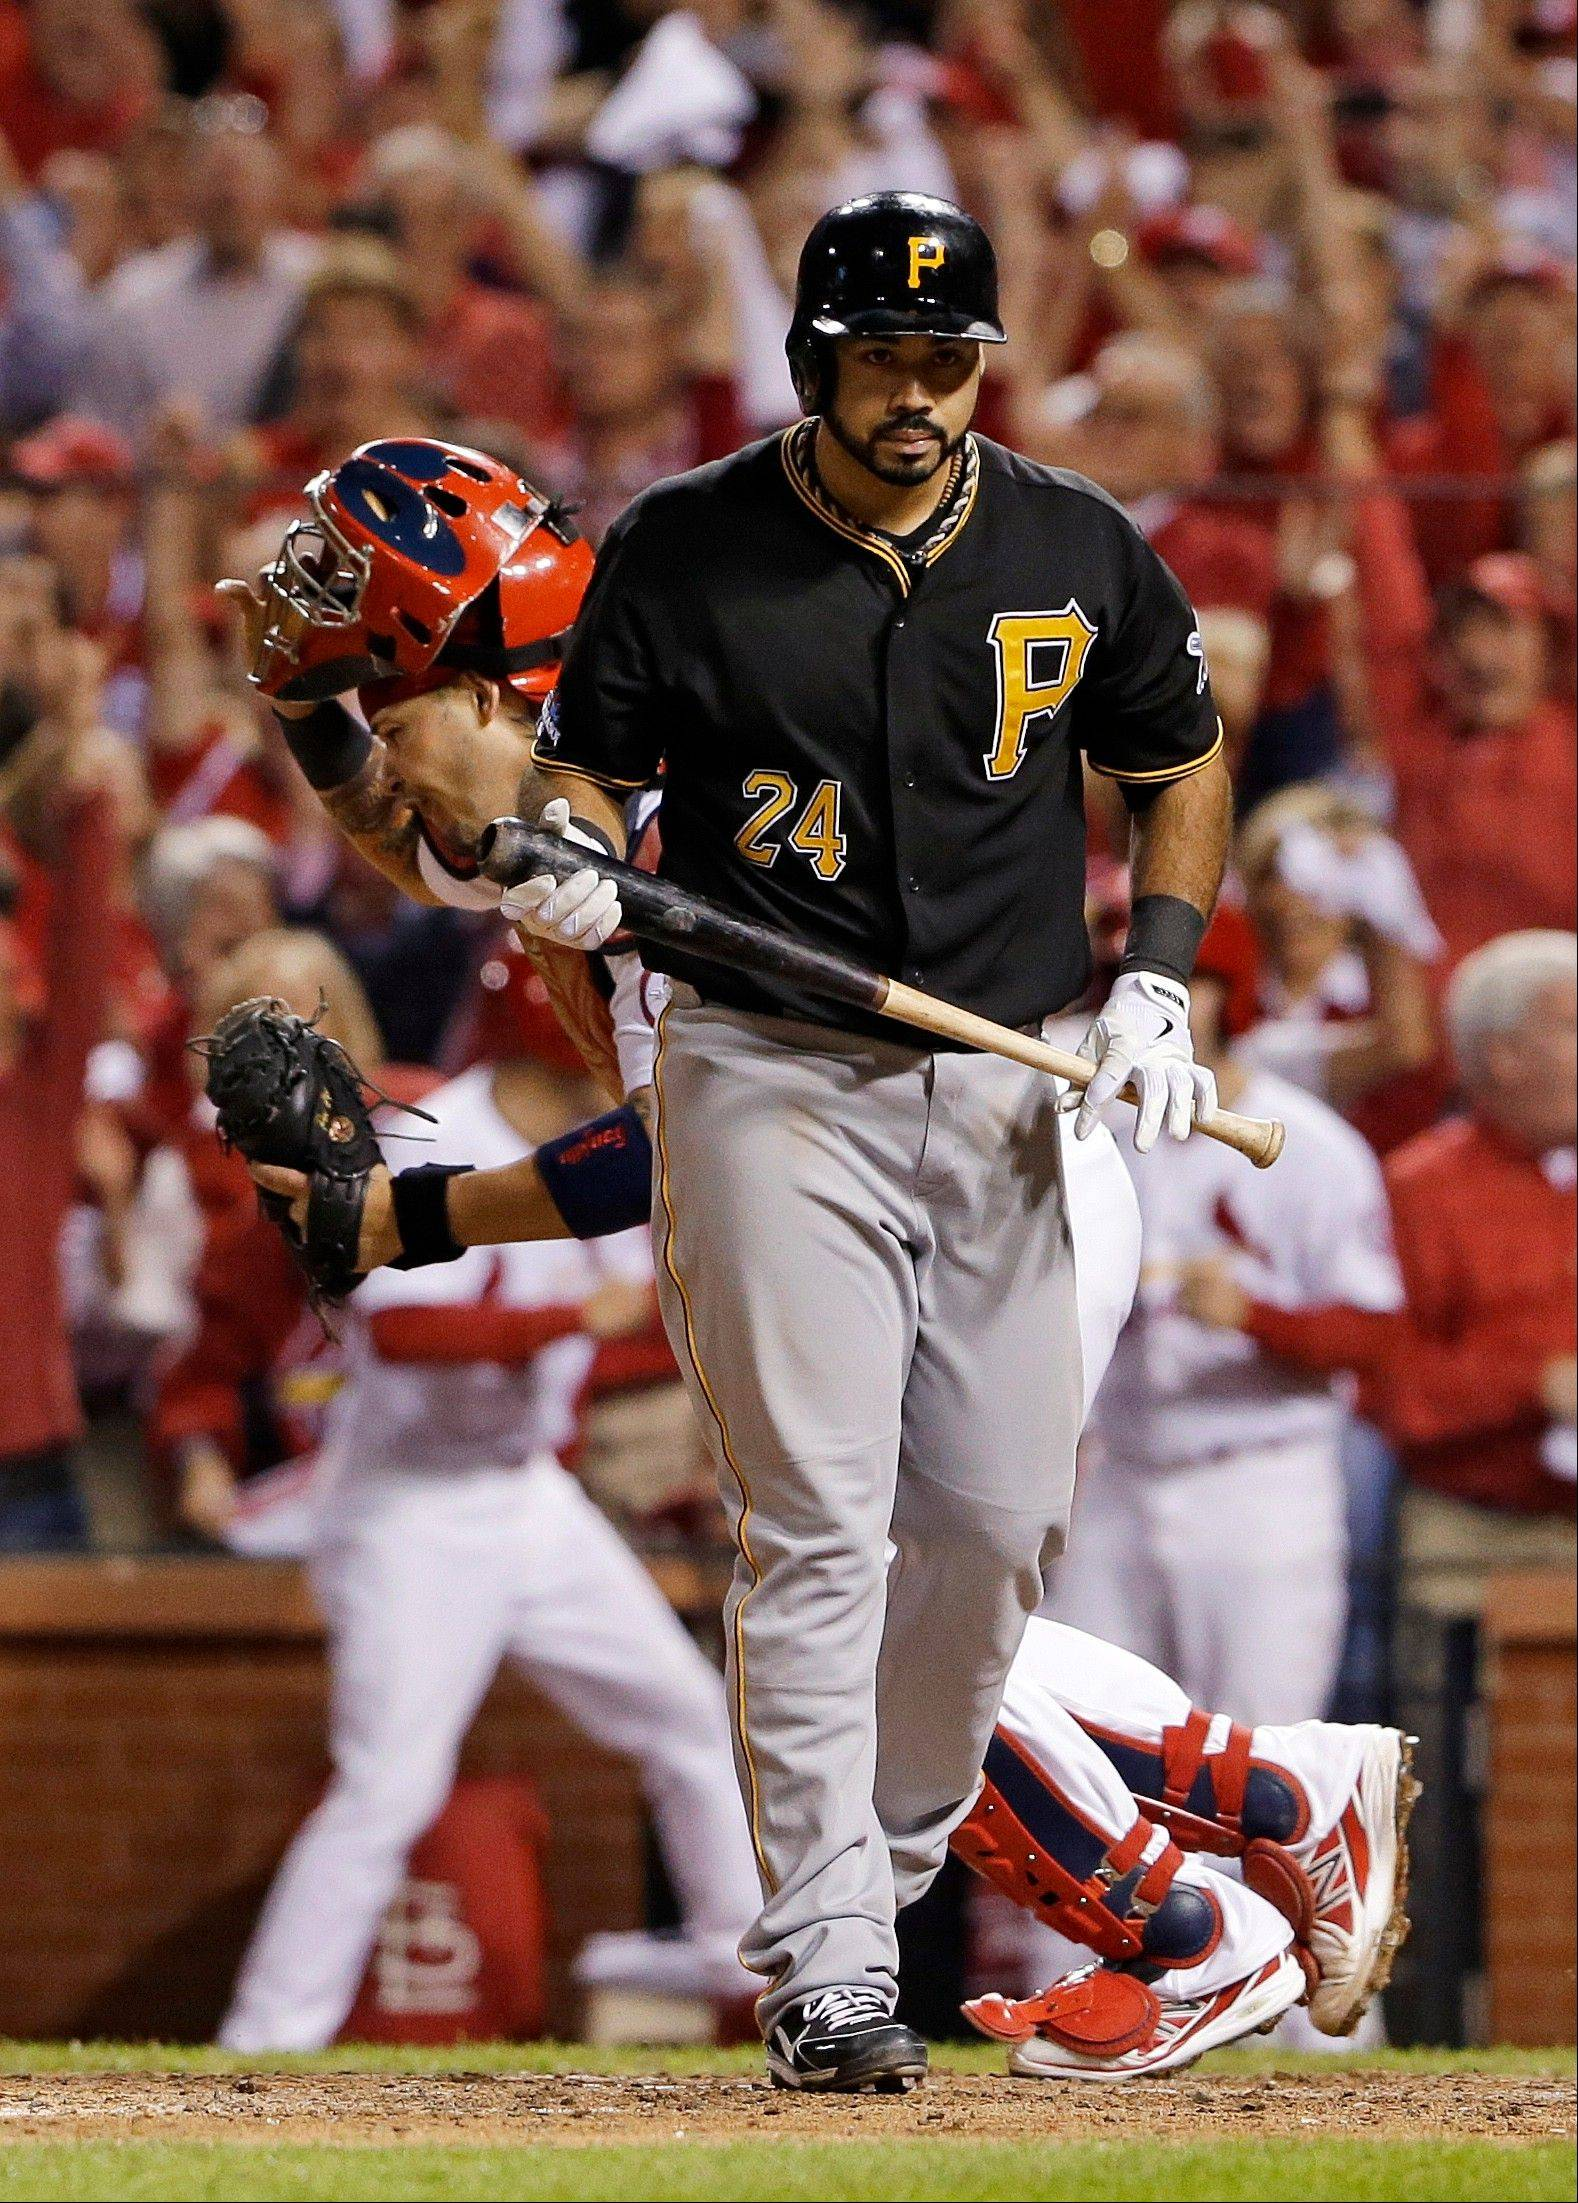 Cardinals catcher Yadier Molina, right, celebrates after the Pirates' Pedro Alvarez, left, struck out in the top of the ninth inning to end Game 5.